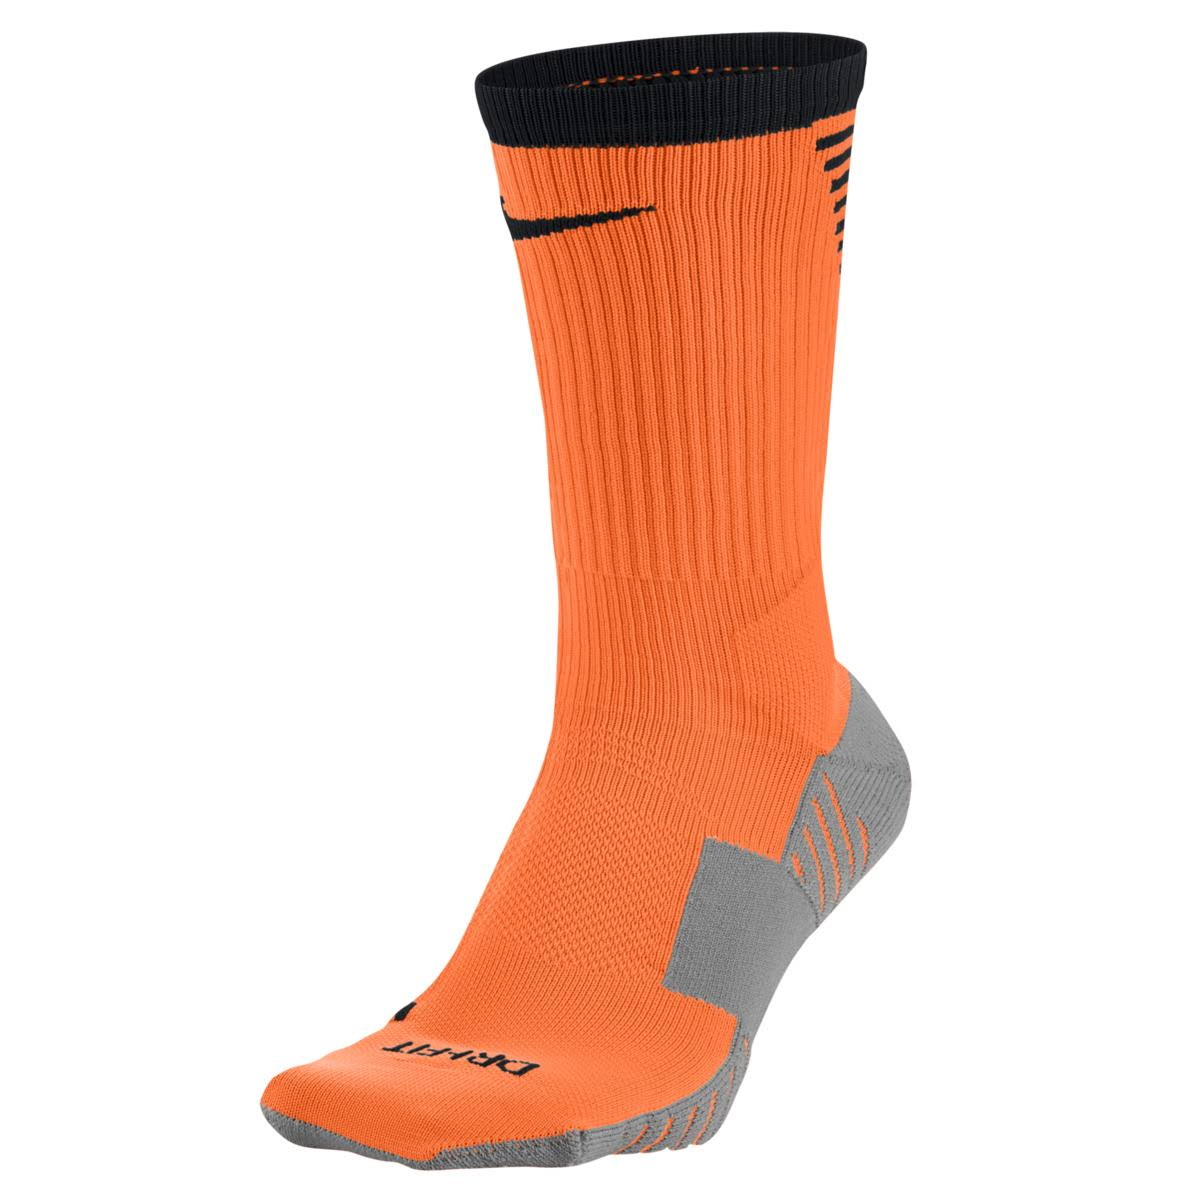 Nike Dry Squad Crew Football Socks - Orange